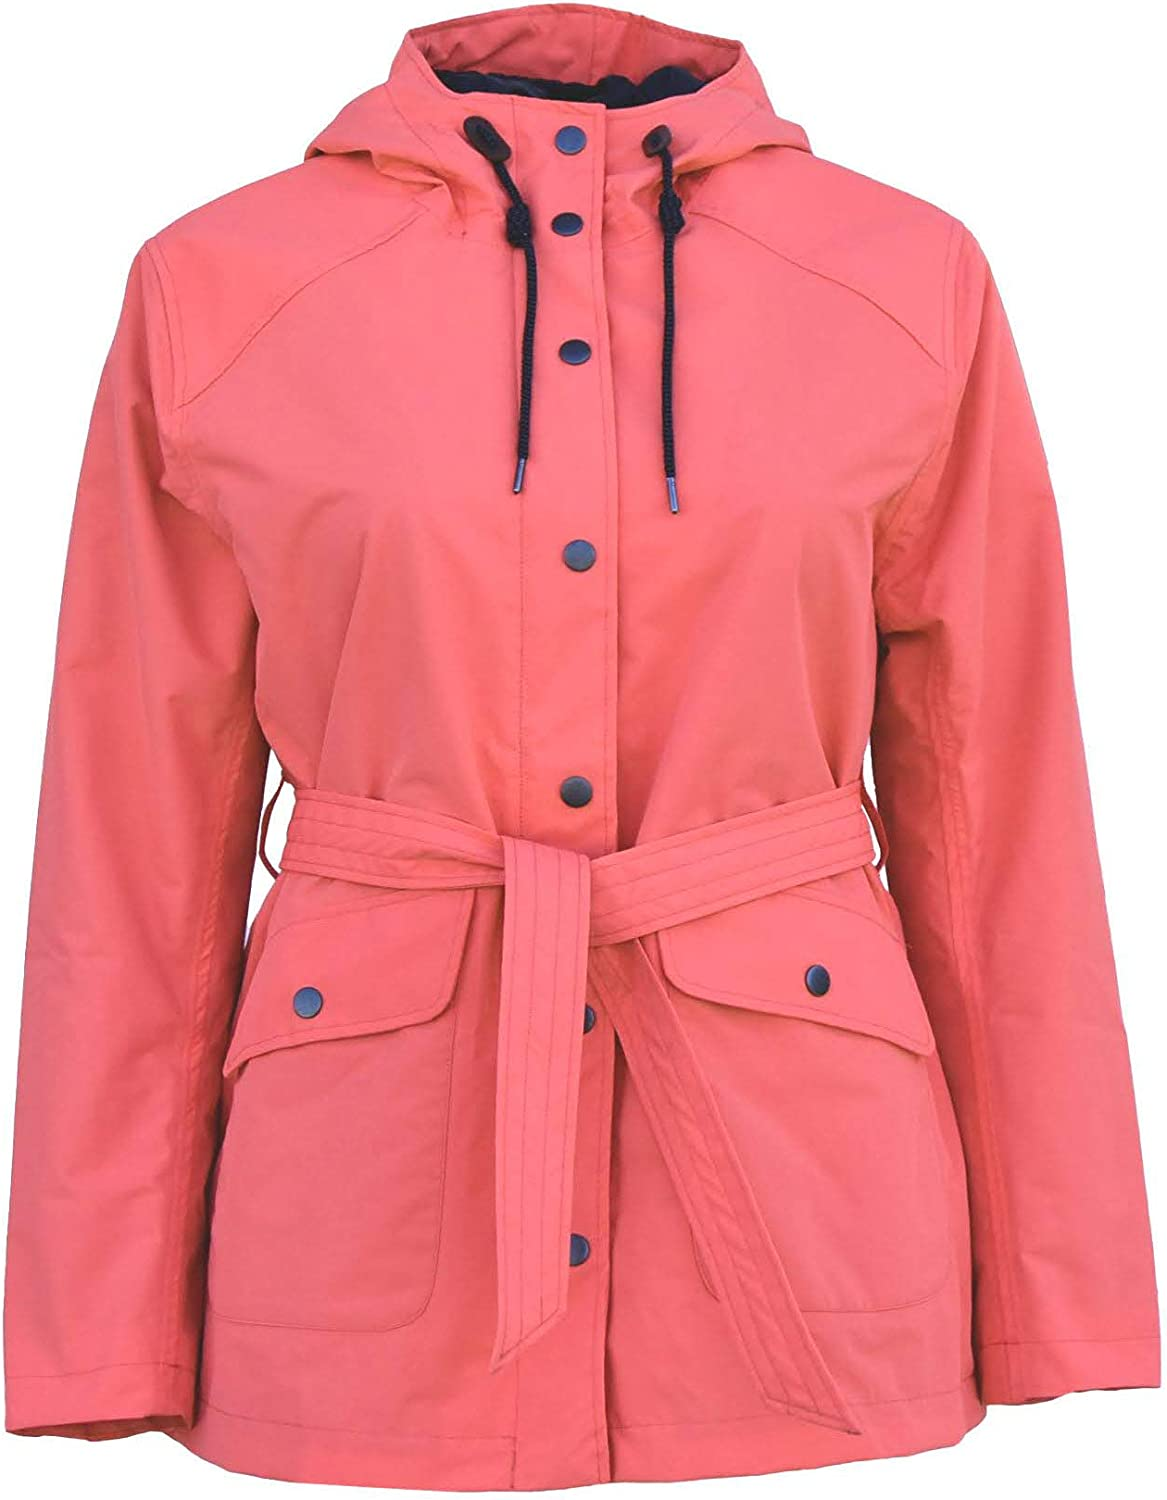 Snow Country Outerwear Women's Plus Size Short Trench Rain Jacket Coat